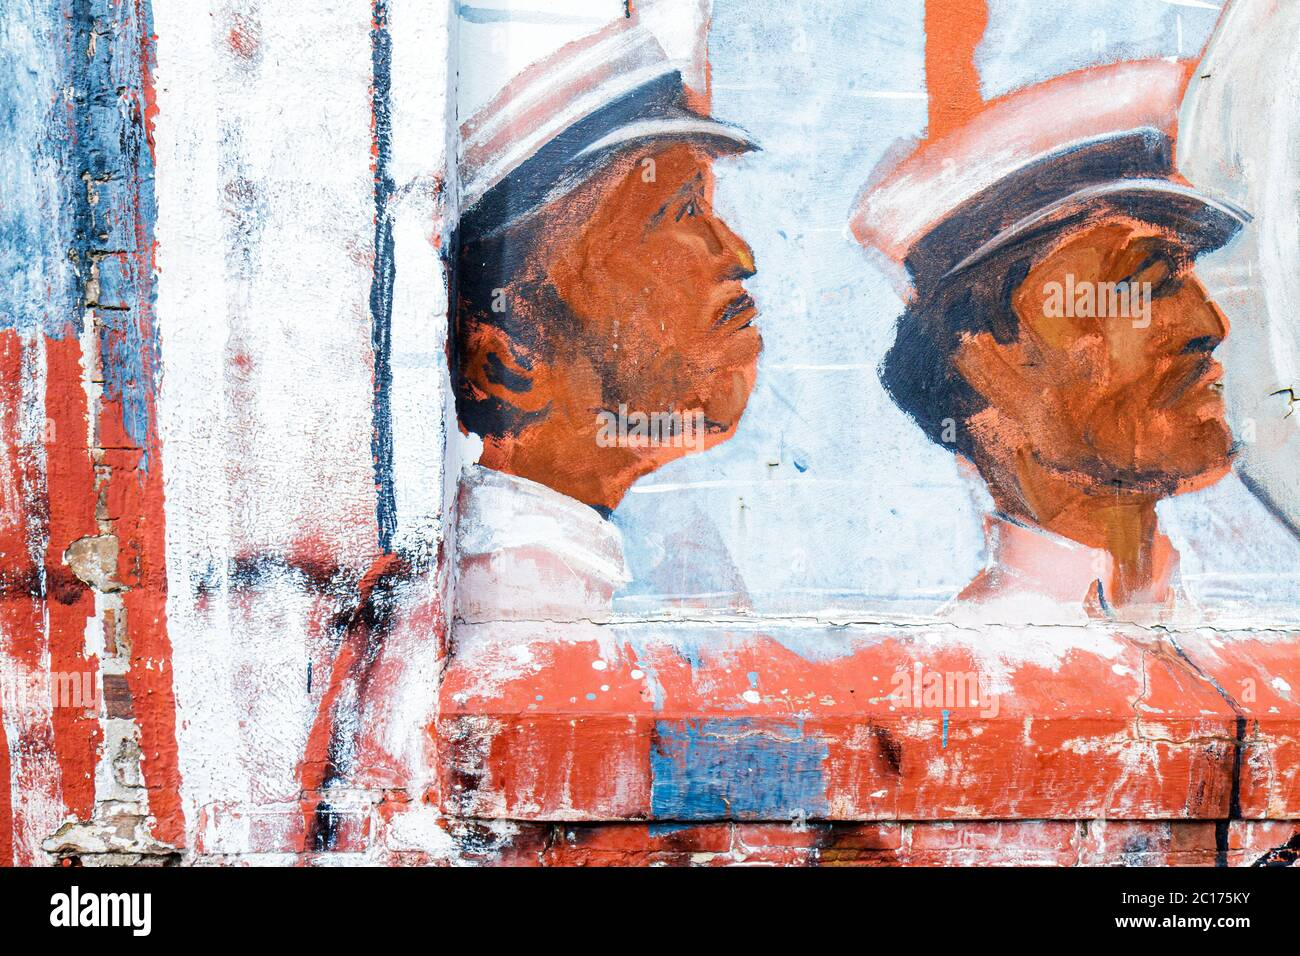 Louisiana, LA, South, Orleans Parish, New Orleans, Warehouse District, wall mural, painting, Black male, hat, profile, detail, close up, art, sightsee Stock Photo